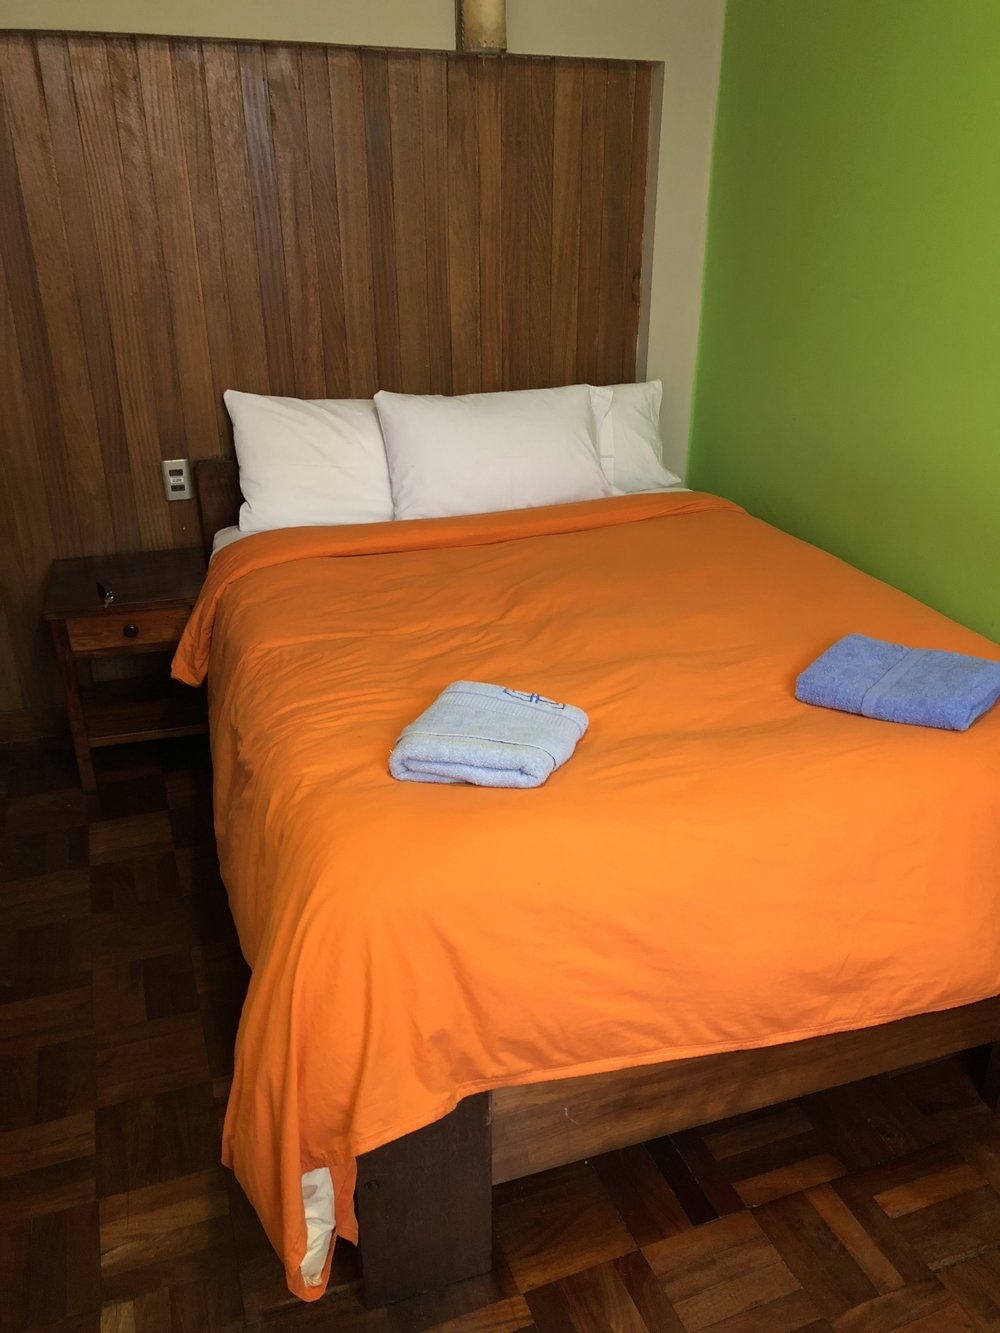 Our room is very cozy with a double bed, warm sheets, and our own ensuite bathroom.